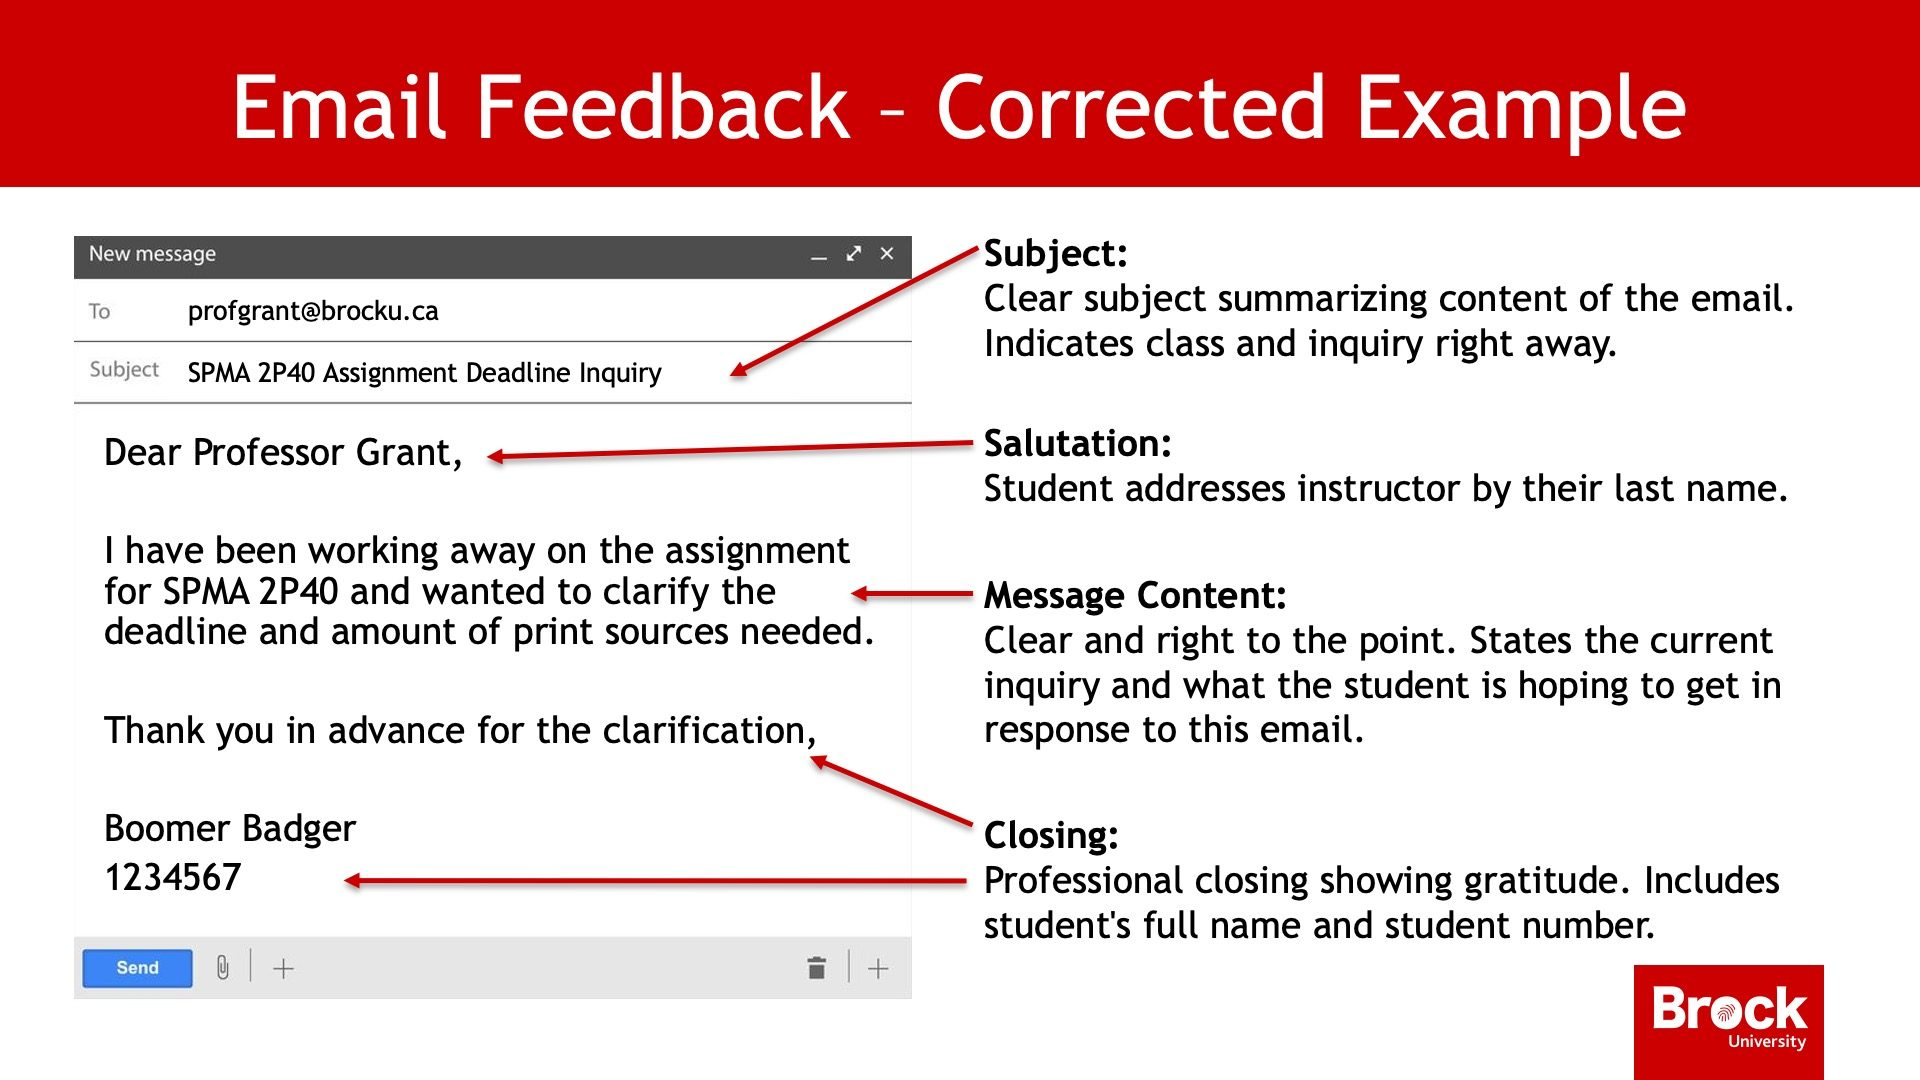 Email feedback - corrected example